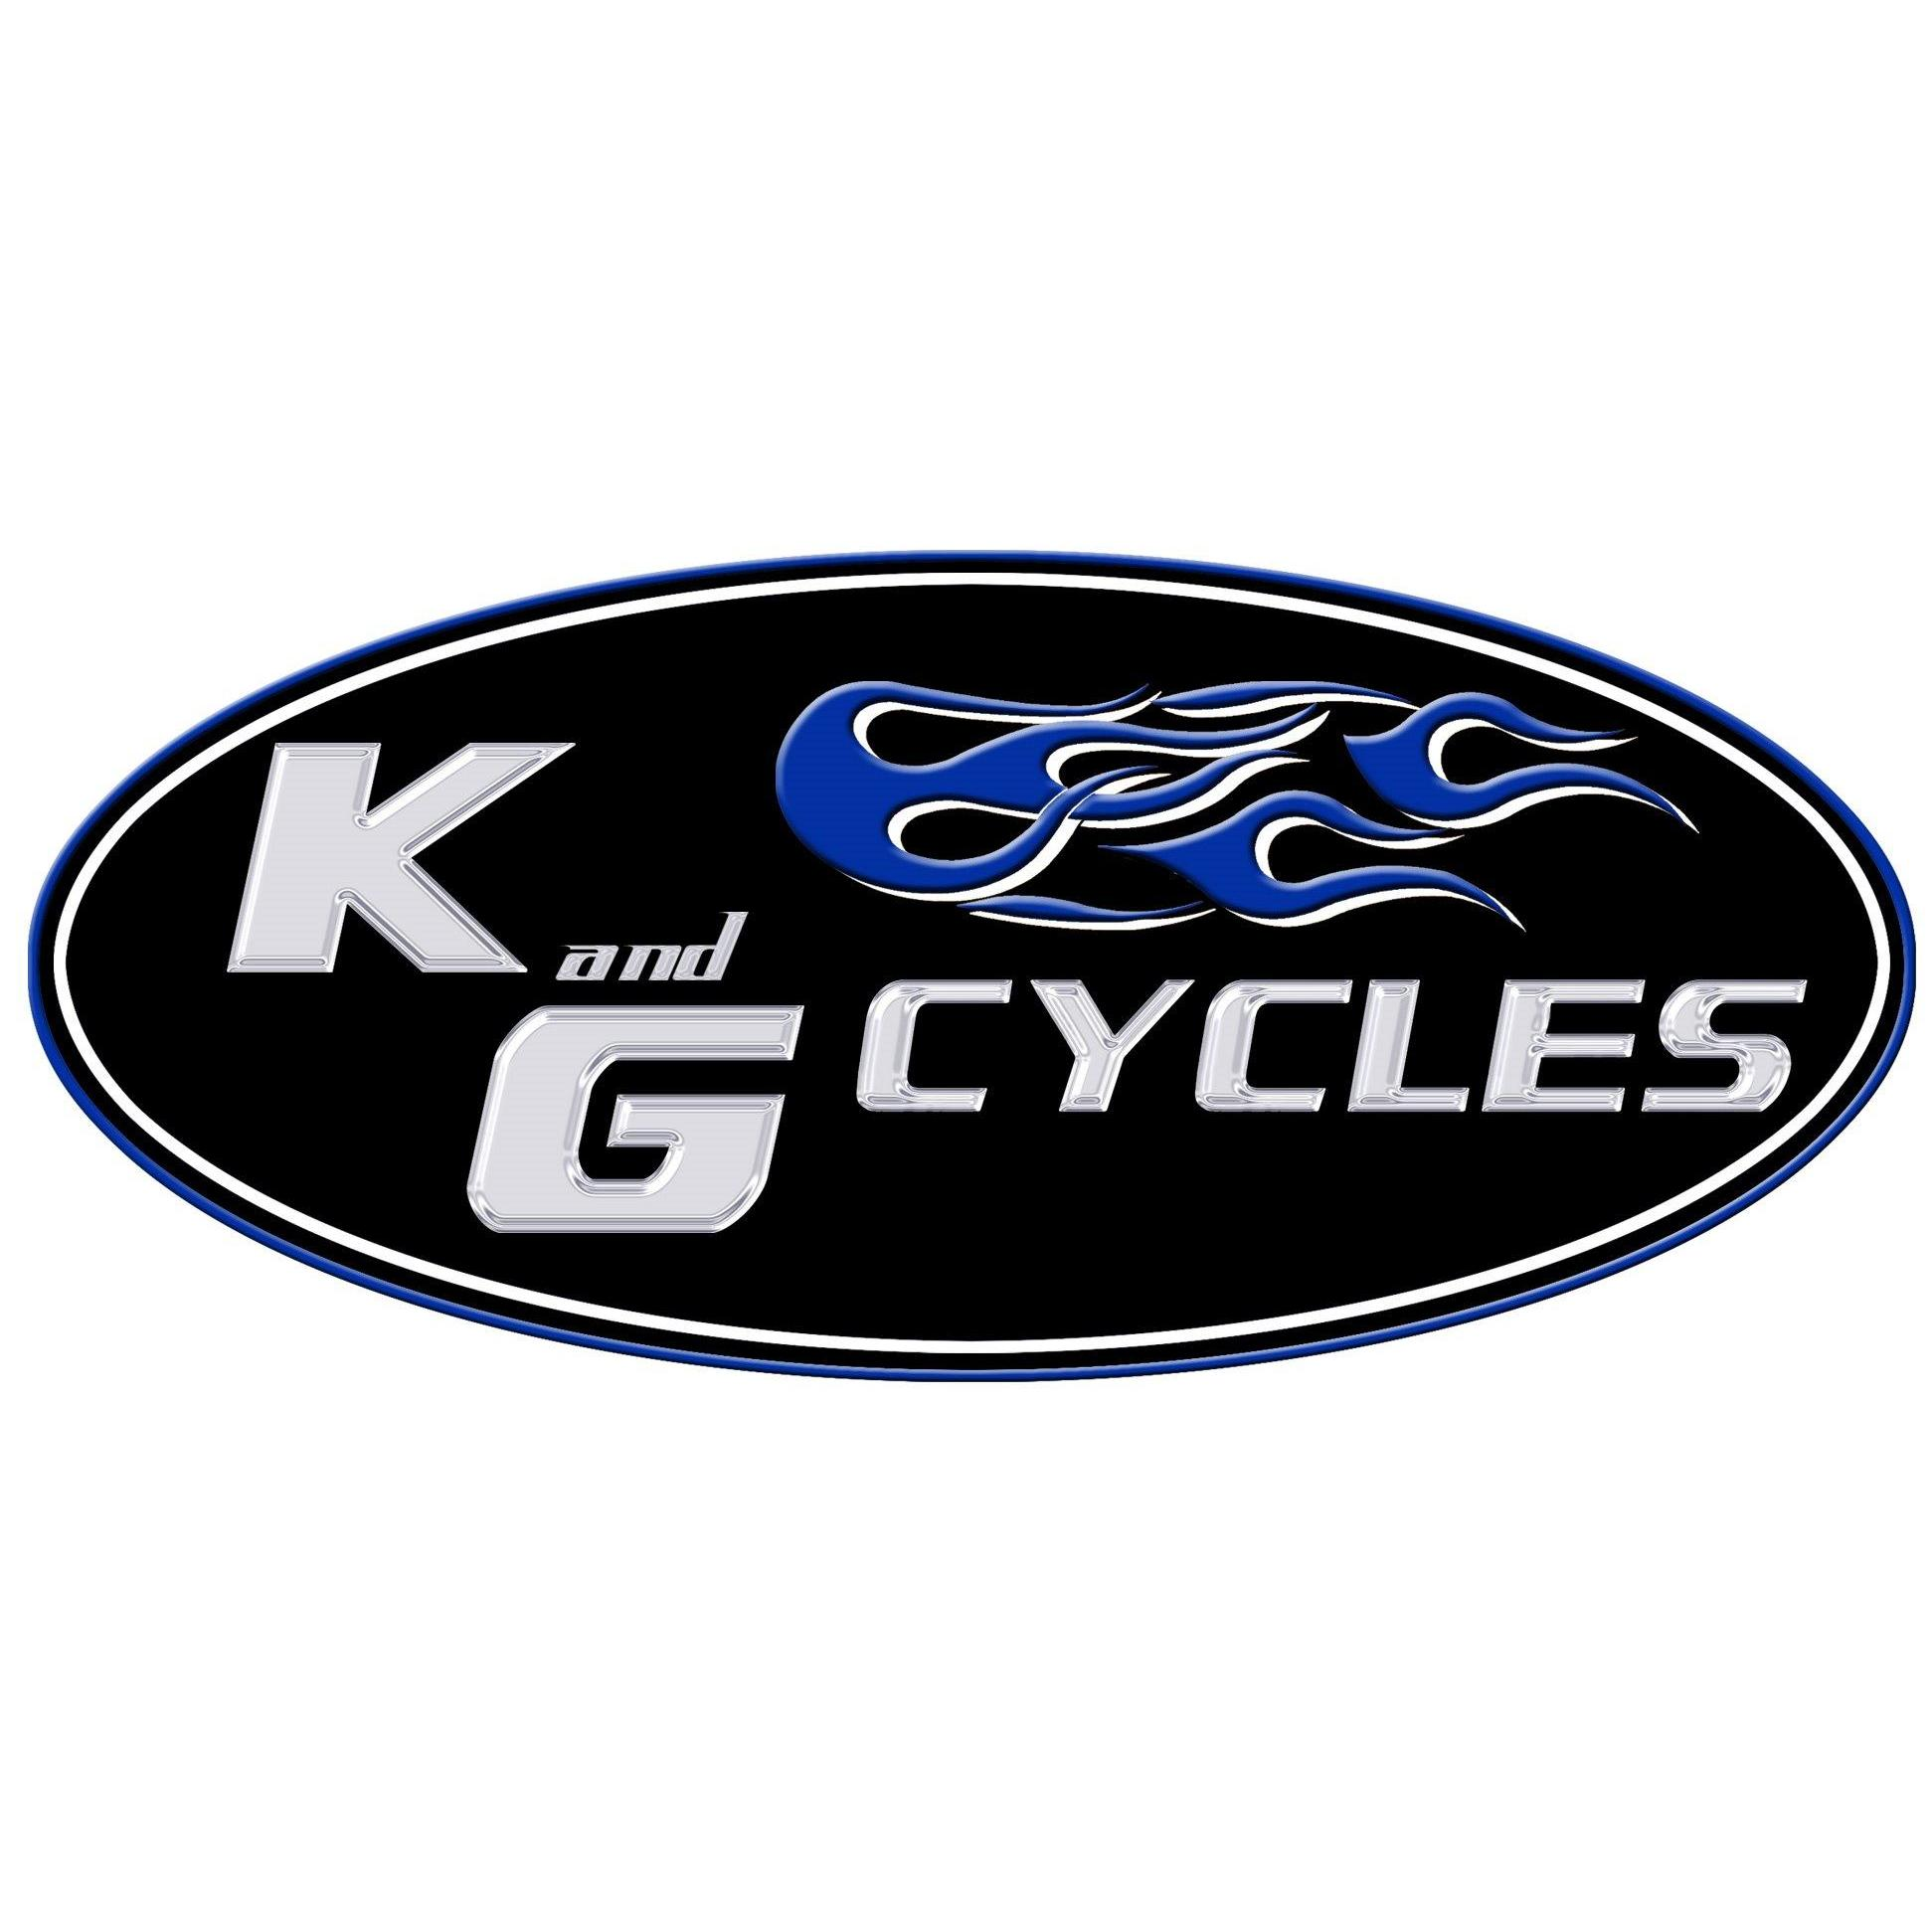 K and G Cycles LLC